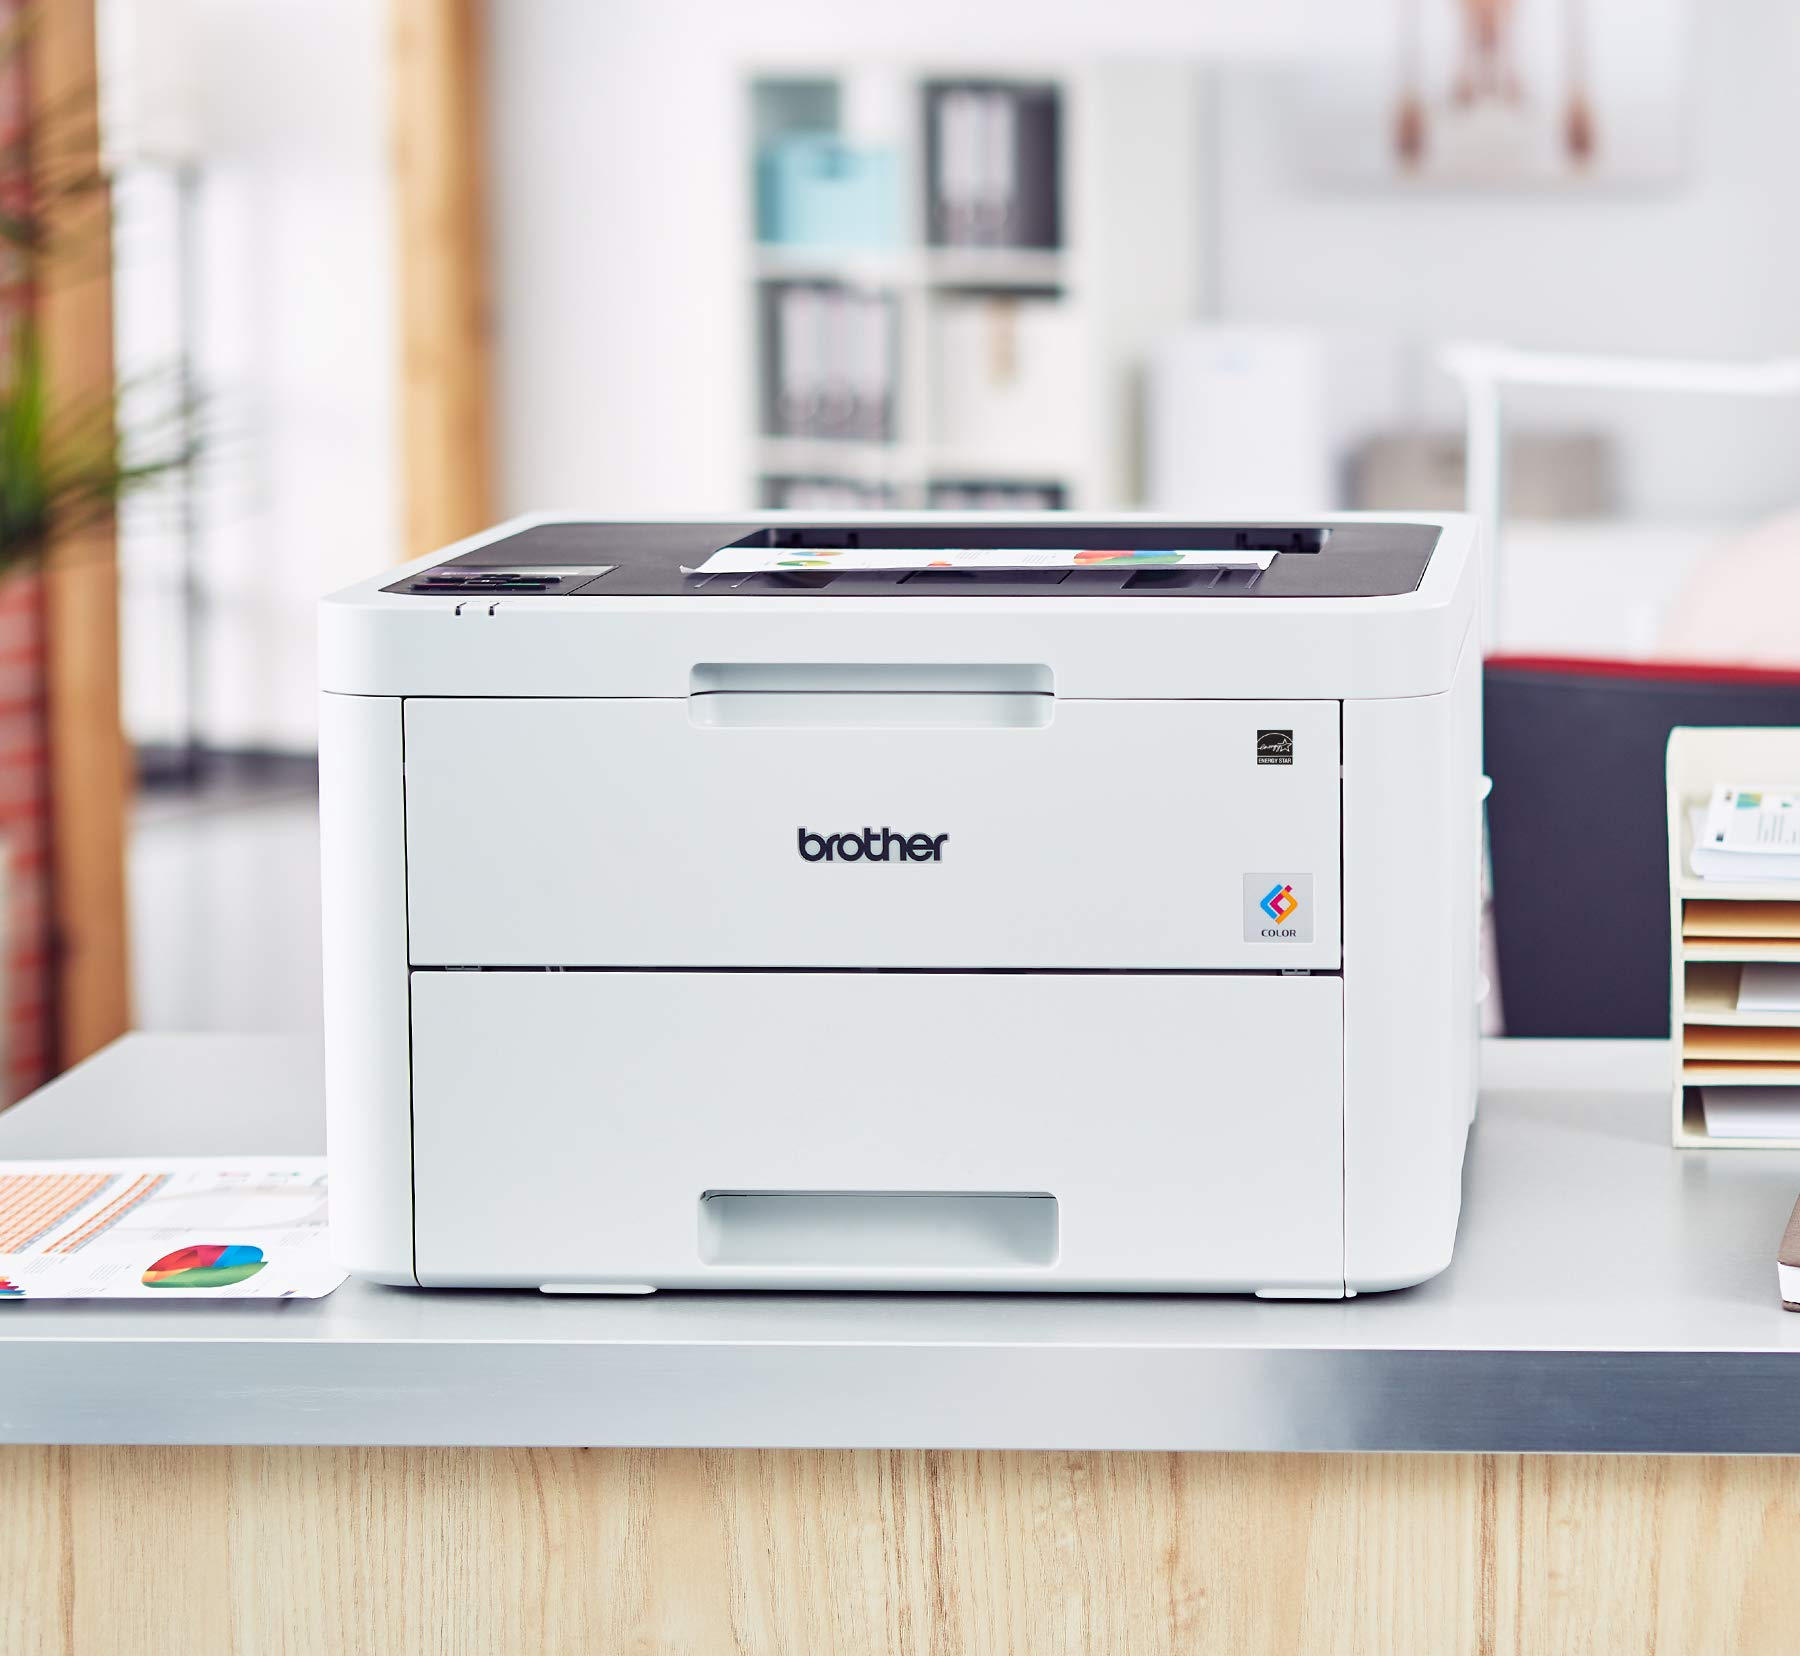 Brother HL-L3230CDW Compact Digital Color Printer Providing Laser Printer Quality Results with Wireless Printing and Duplex Printing, Amazon Dash Replenishment Enabled by Brother (Image #2)